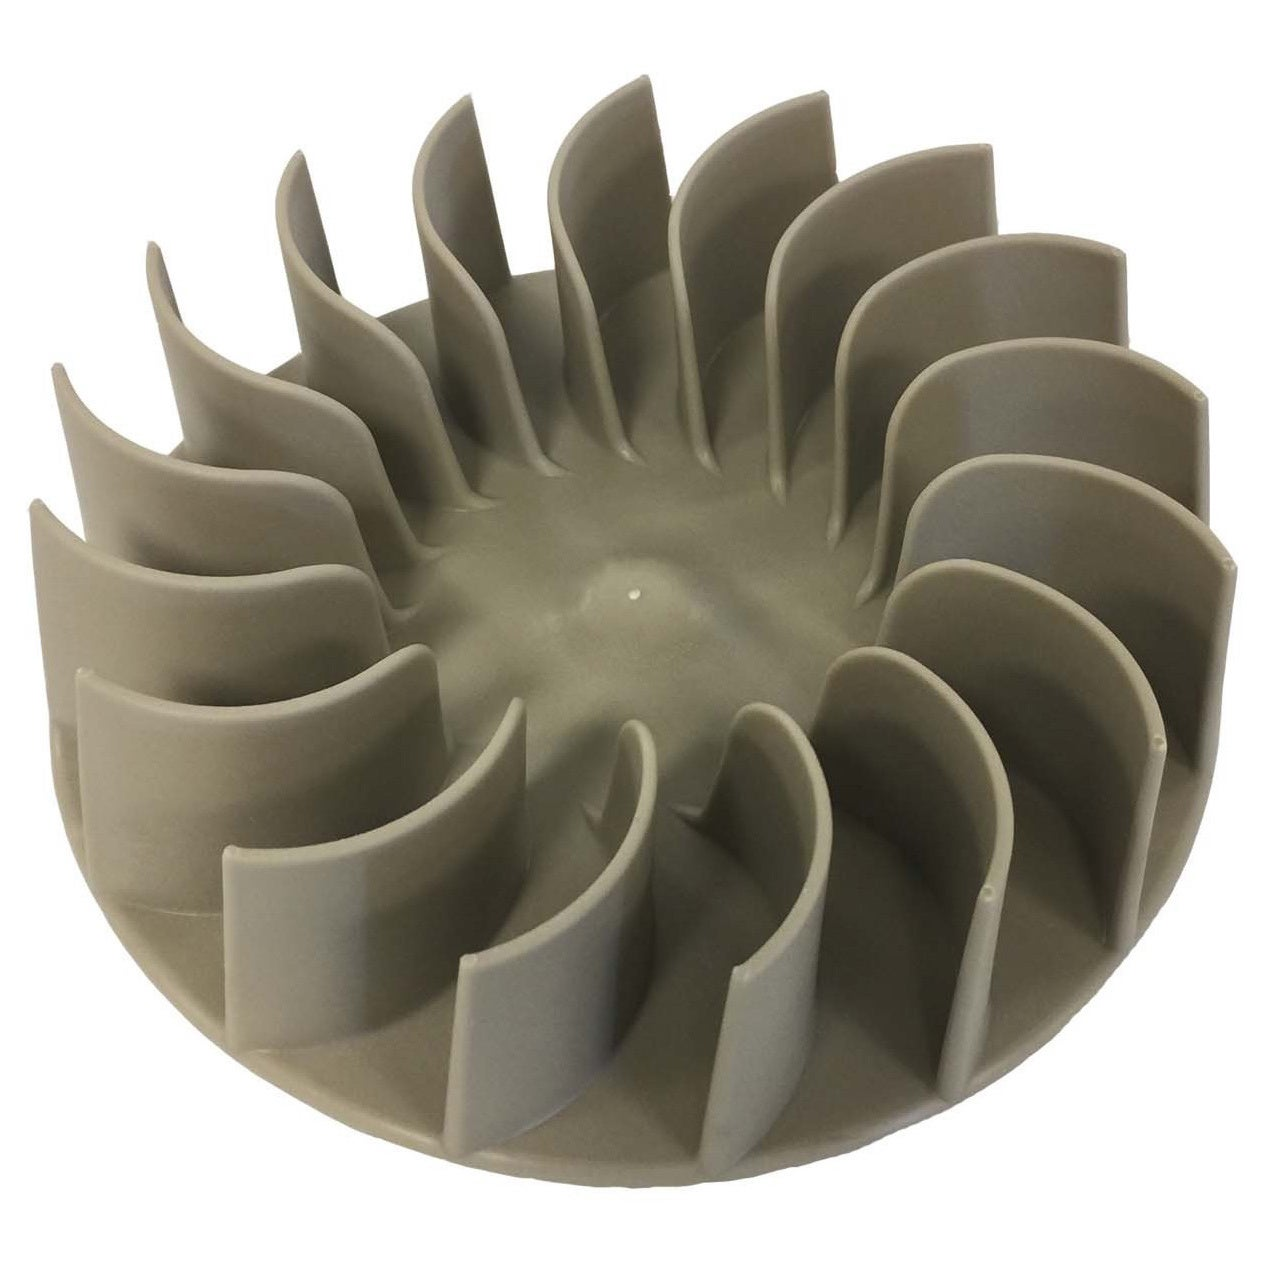 Crucial Dryer Blower Wheel Fits Amana, Kenmore, KitchenAid, Magic Chef, Maytag, Roper, Whirlpool & More, Part # 279711 (dryer part) (Plastic)